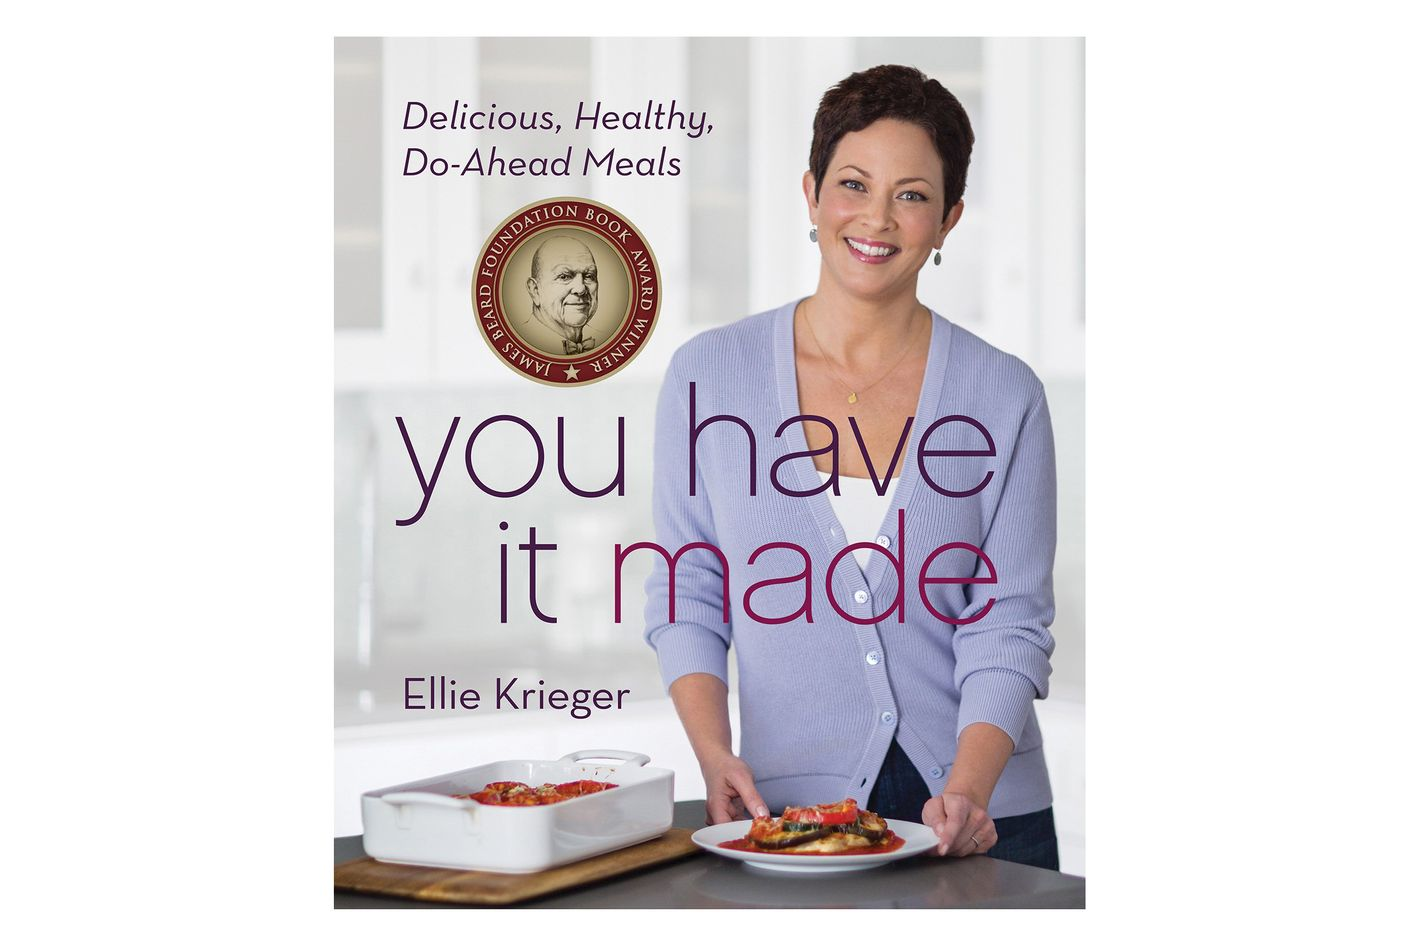 You Have It Made by Ellie Krieger